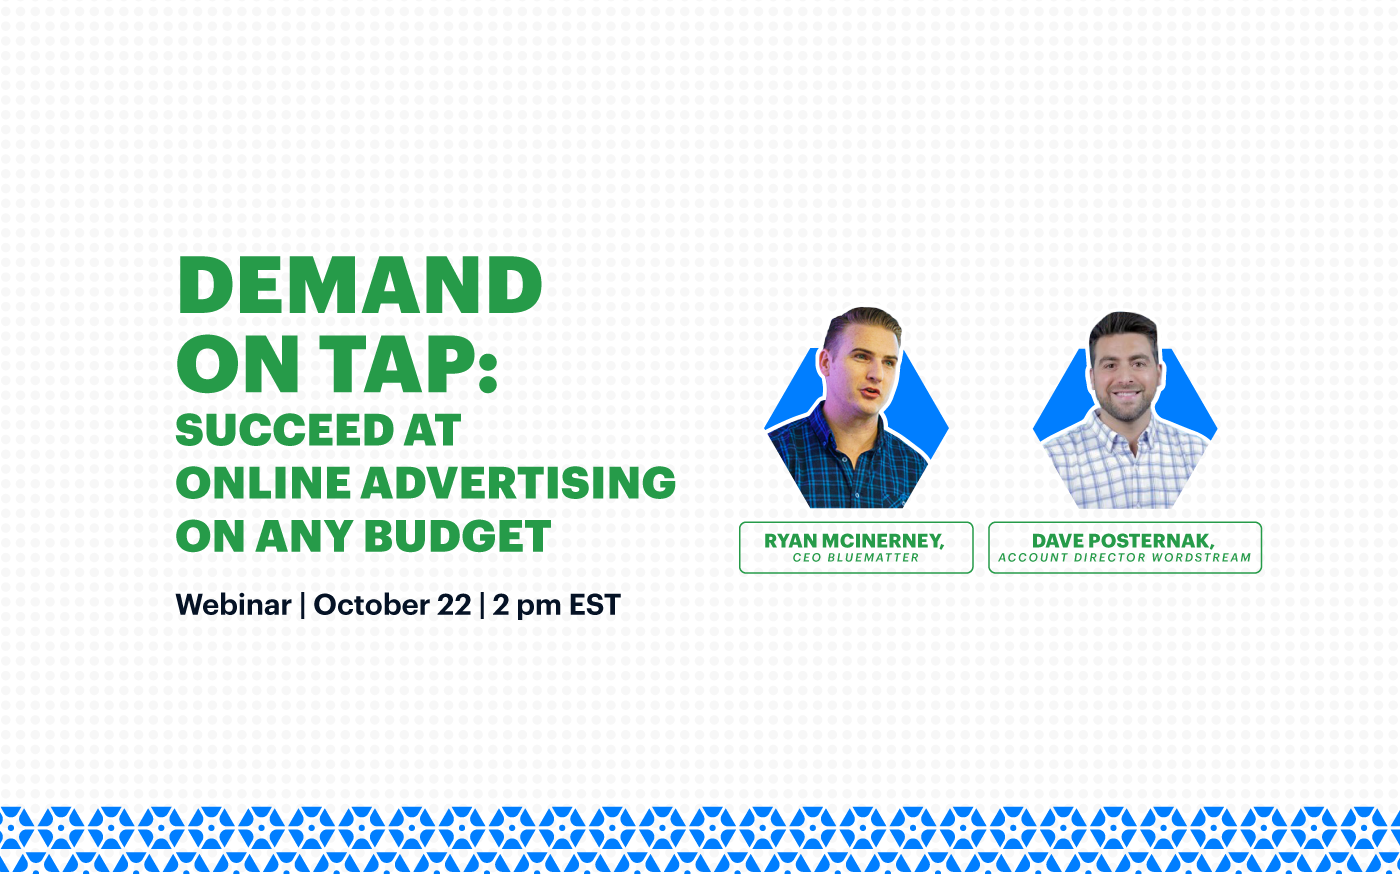 Demand On Tap: Succeed at Online Advertising on Any Budget   Bluematter + WordStream Webinar